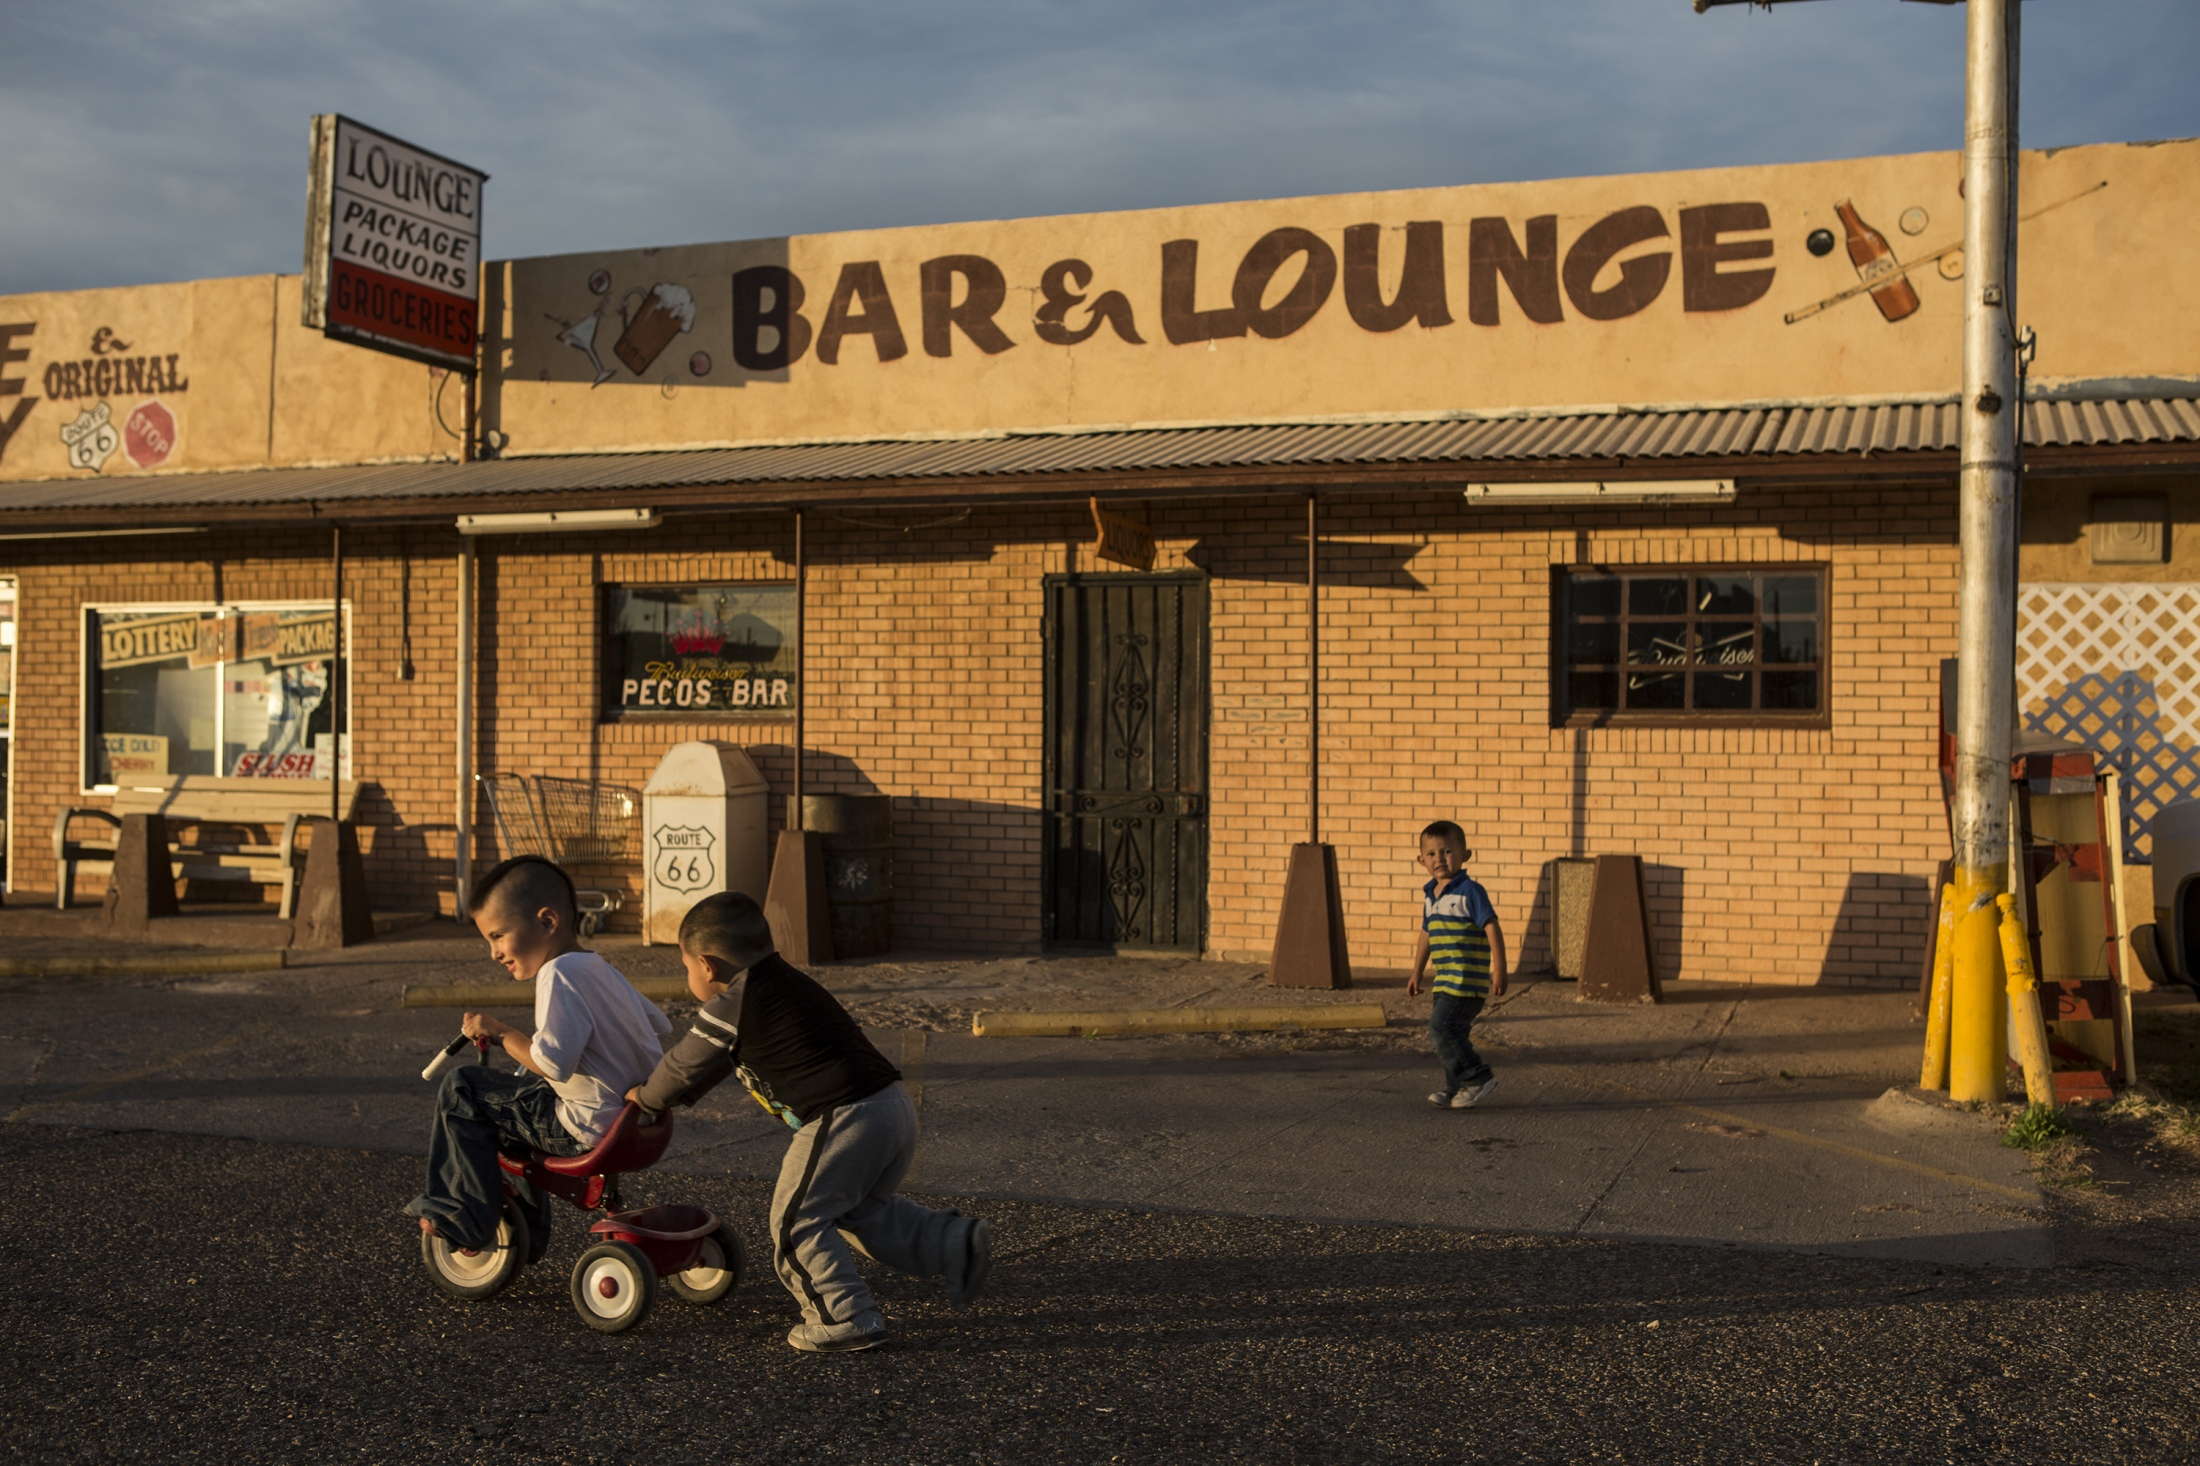 Children play in front of the now closed Pecos Bar on the west side of Santa Rosa. The saloon stopped serving patrons in the winter of 2015 after the owner sold the liquor license to a national restaurant chain in Albuquerque. The bar was a part of the Route 66 boom in the mid 20th-Century when the travelers would first enter the town and drive past the bar. After construction of Interstate 40 diverted traffic from the west side, businesses began to close.